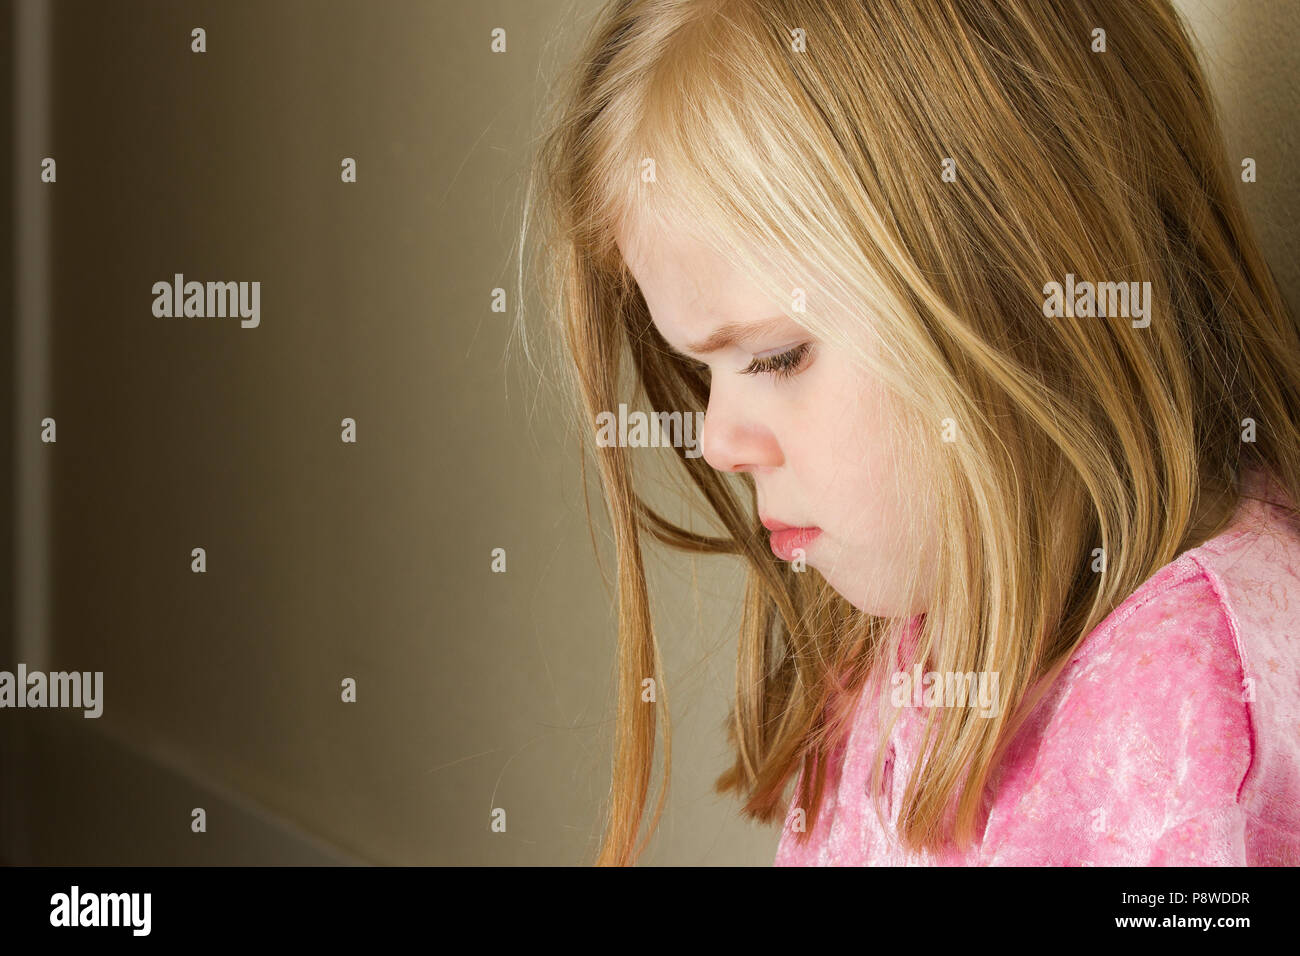 Child could be sad due to abuse, domestic violence, or even sad due to a bully - Stock Image